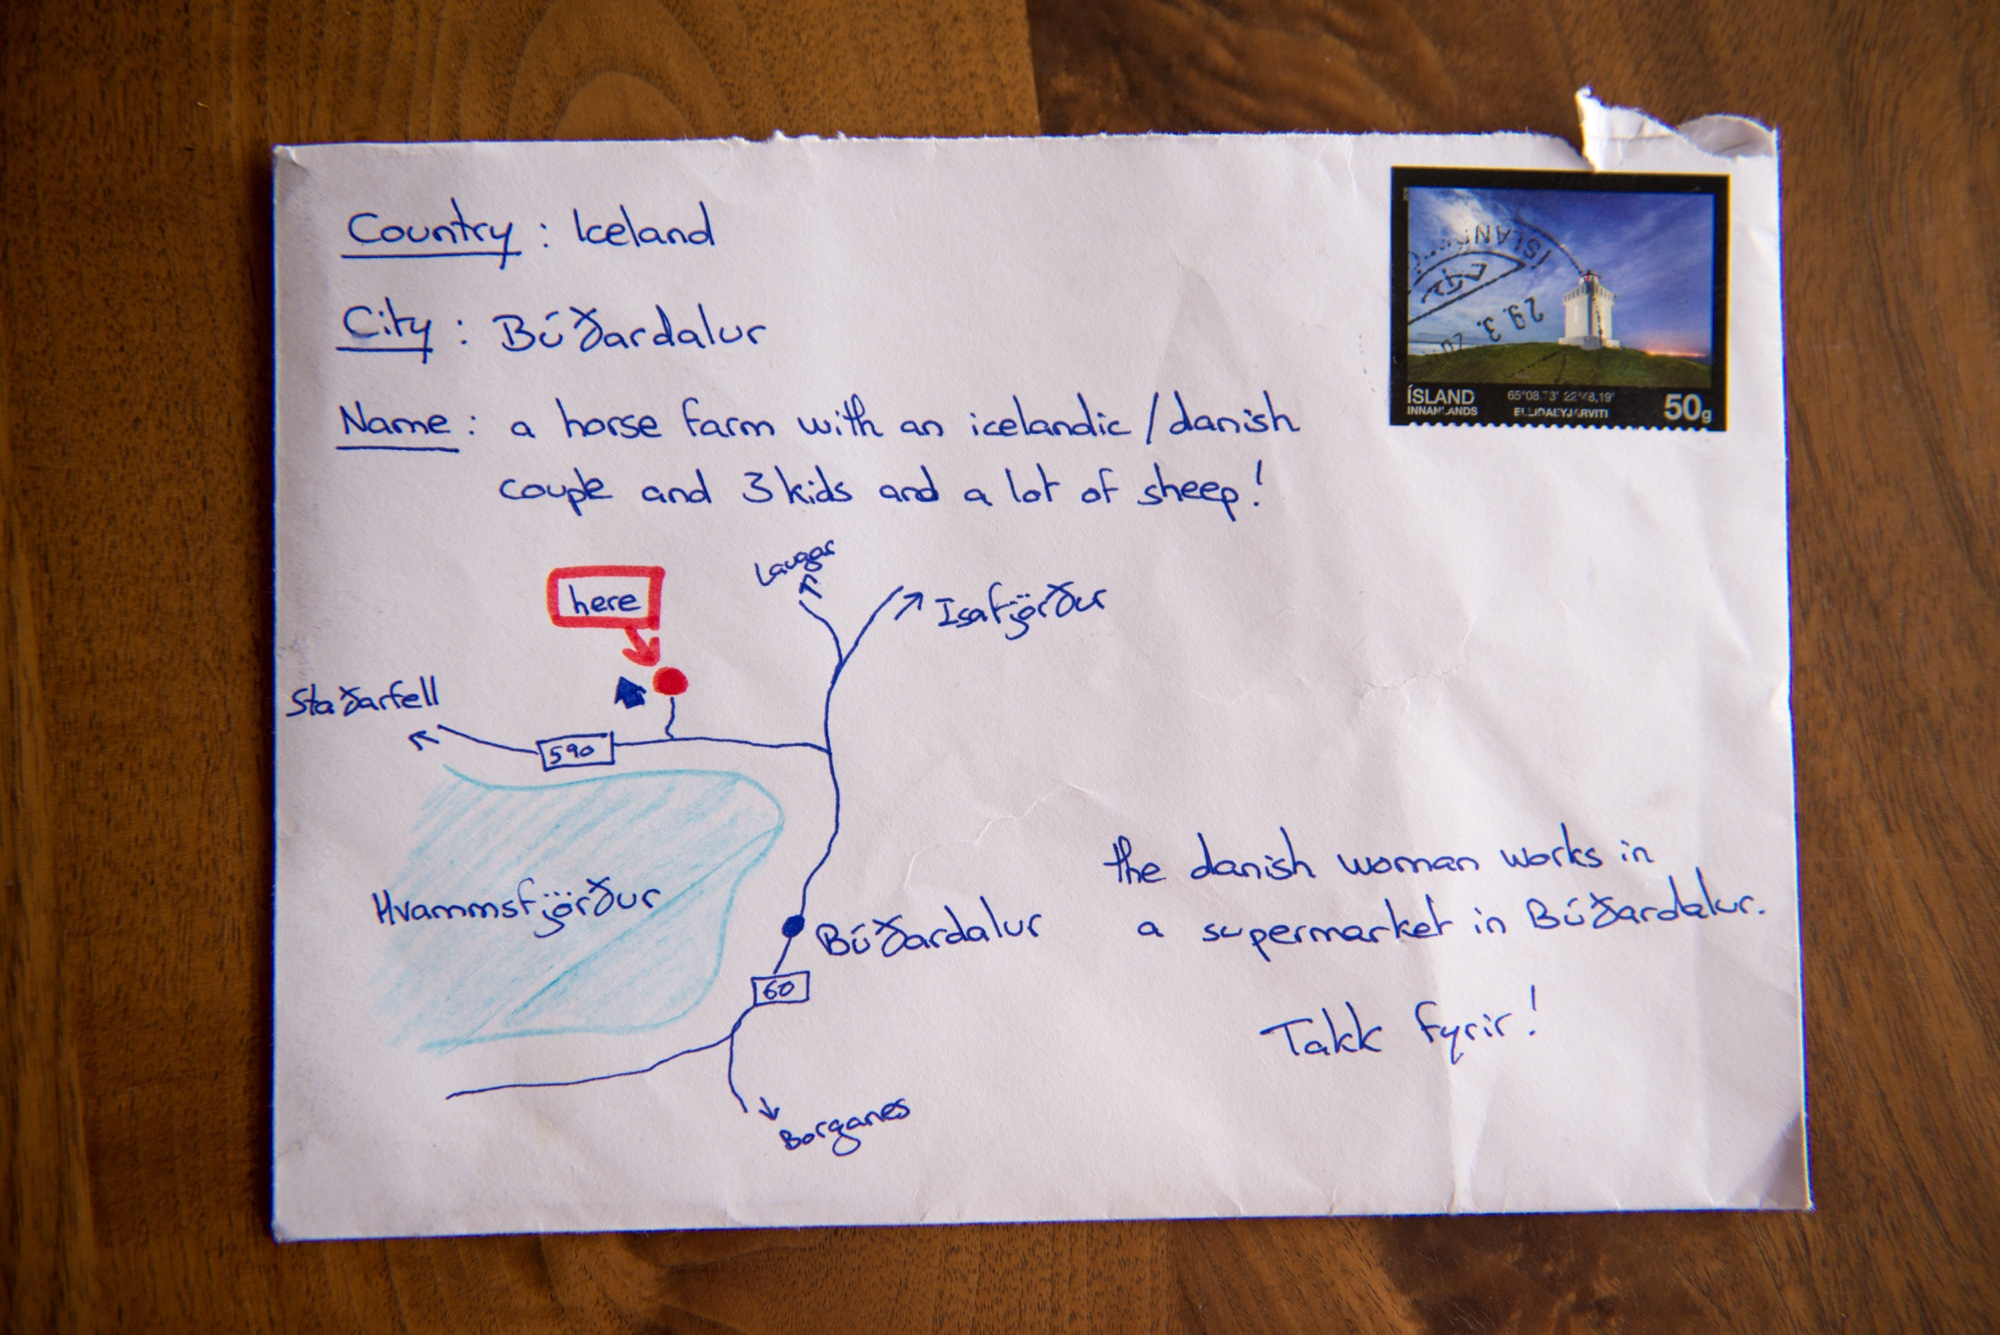 Letter sent to Iceland farm with hand-drawn map instead of address gets there anyway